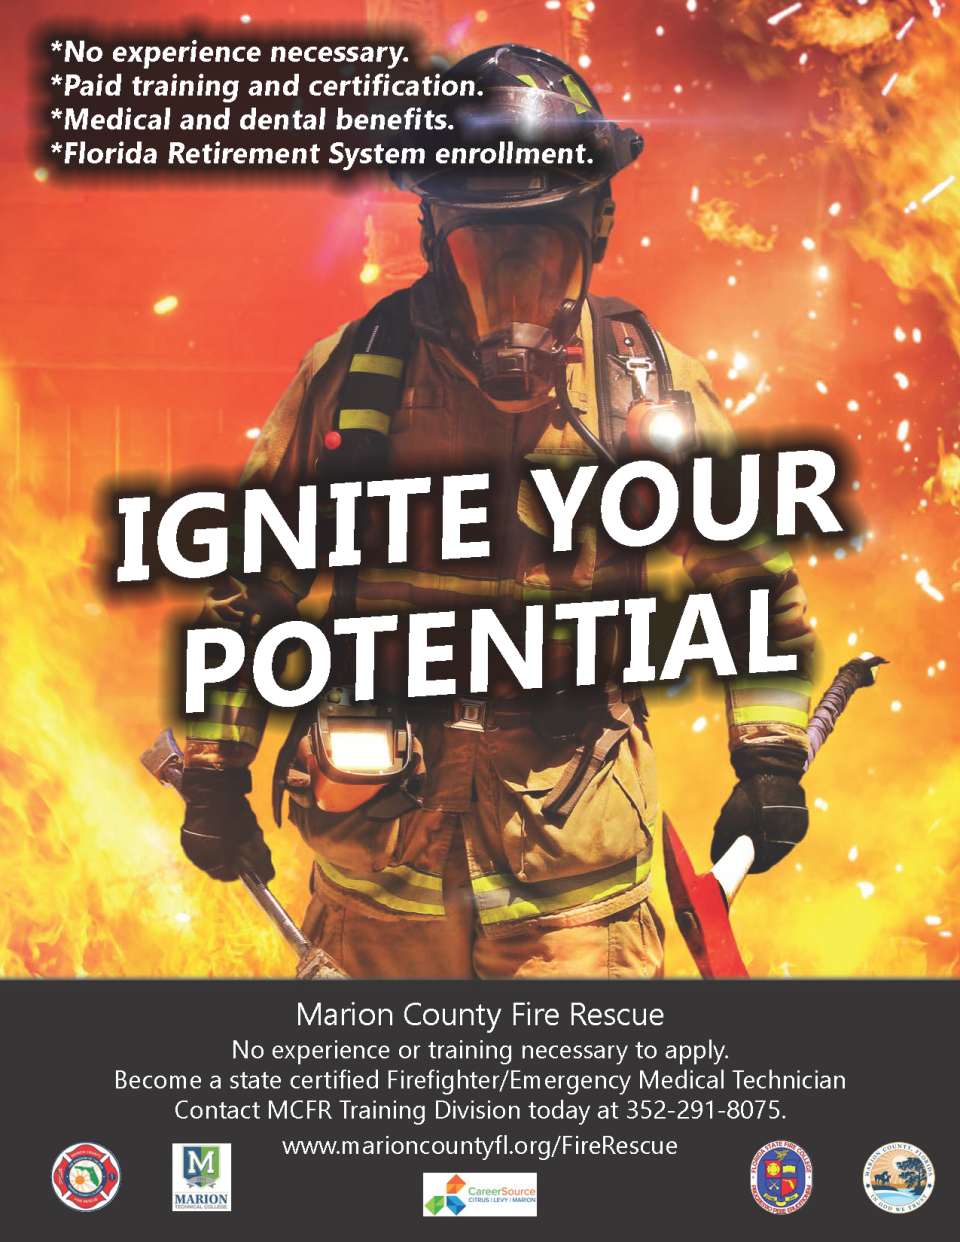 Recruitment flyer Ignite